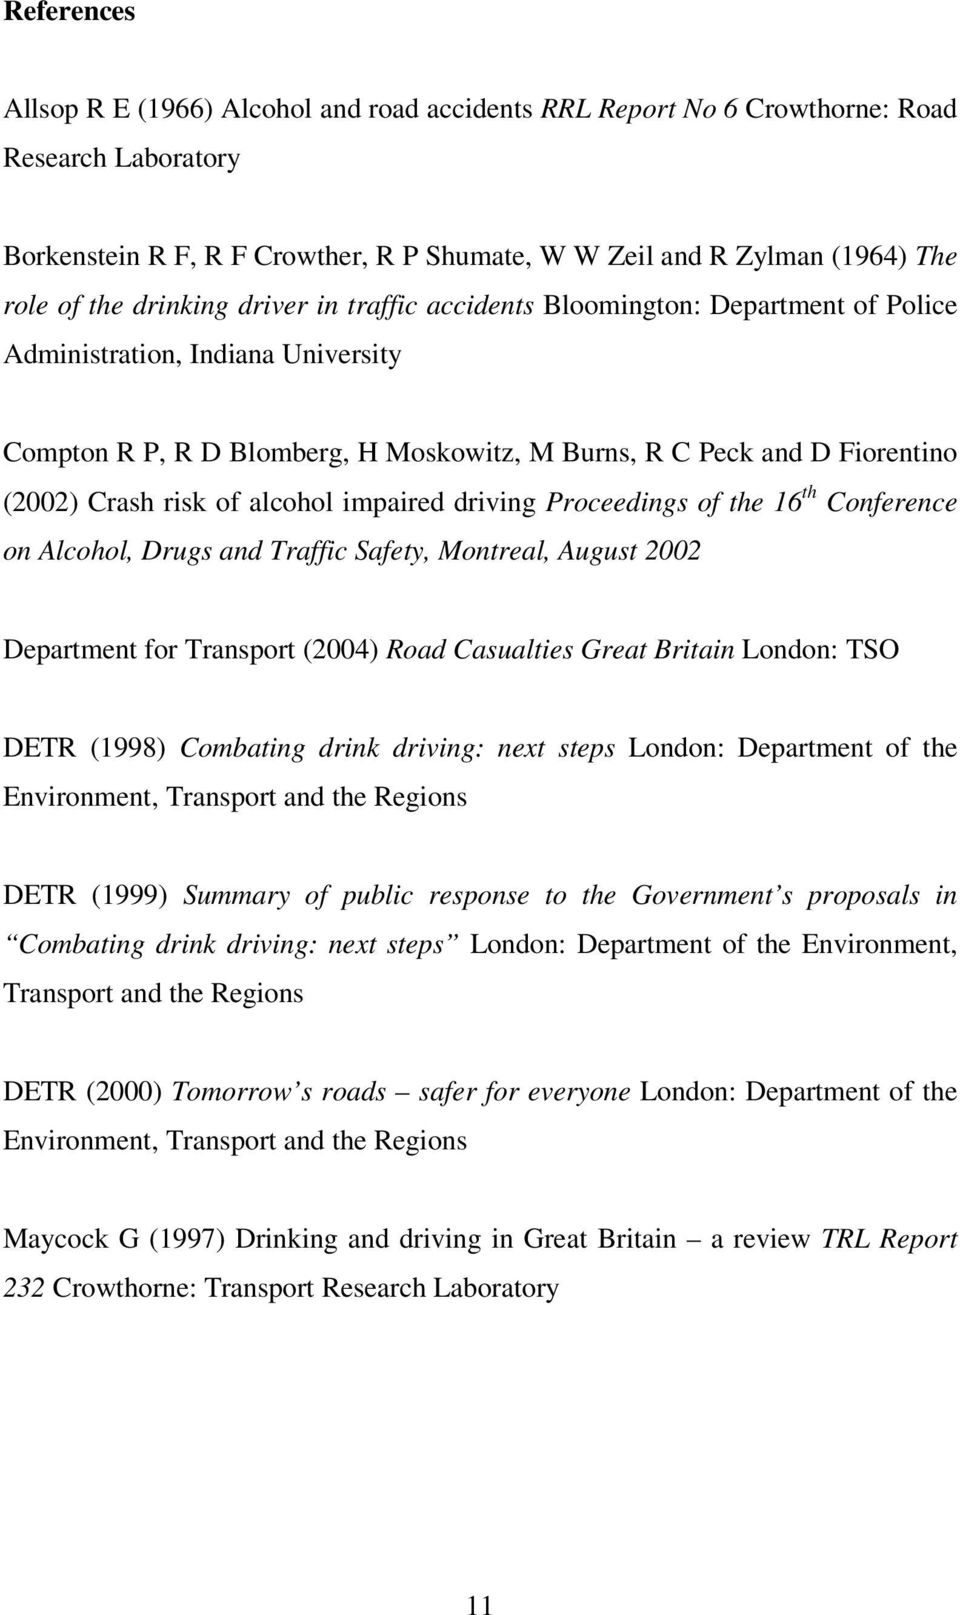 of alcohol impaired driving Proceedings of the 16 th Conference on Alcohol, Drugs and Traffic Safety, Montreal, August 2002 Department for Transport (2004) Road Casualties Great Britain London: TSO